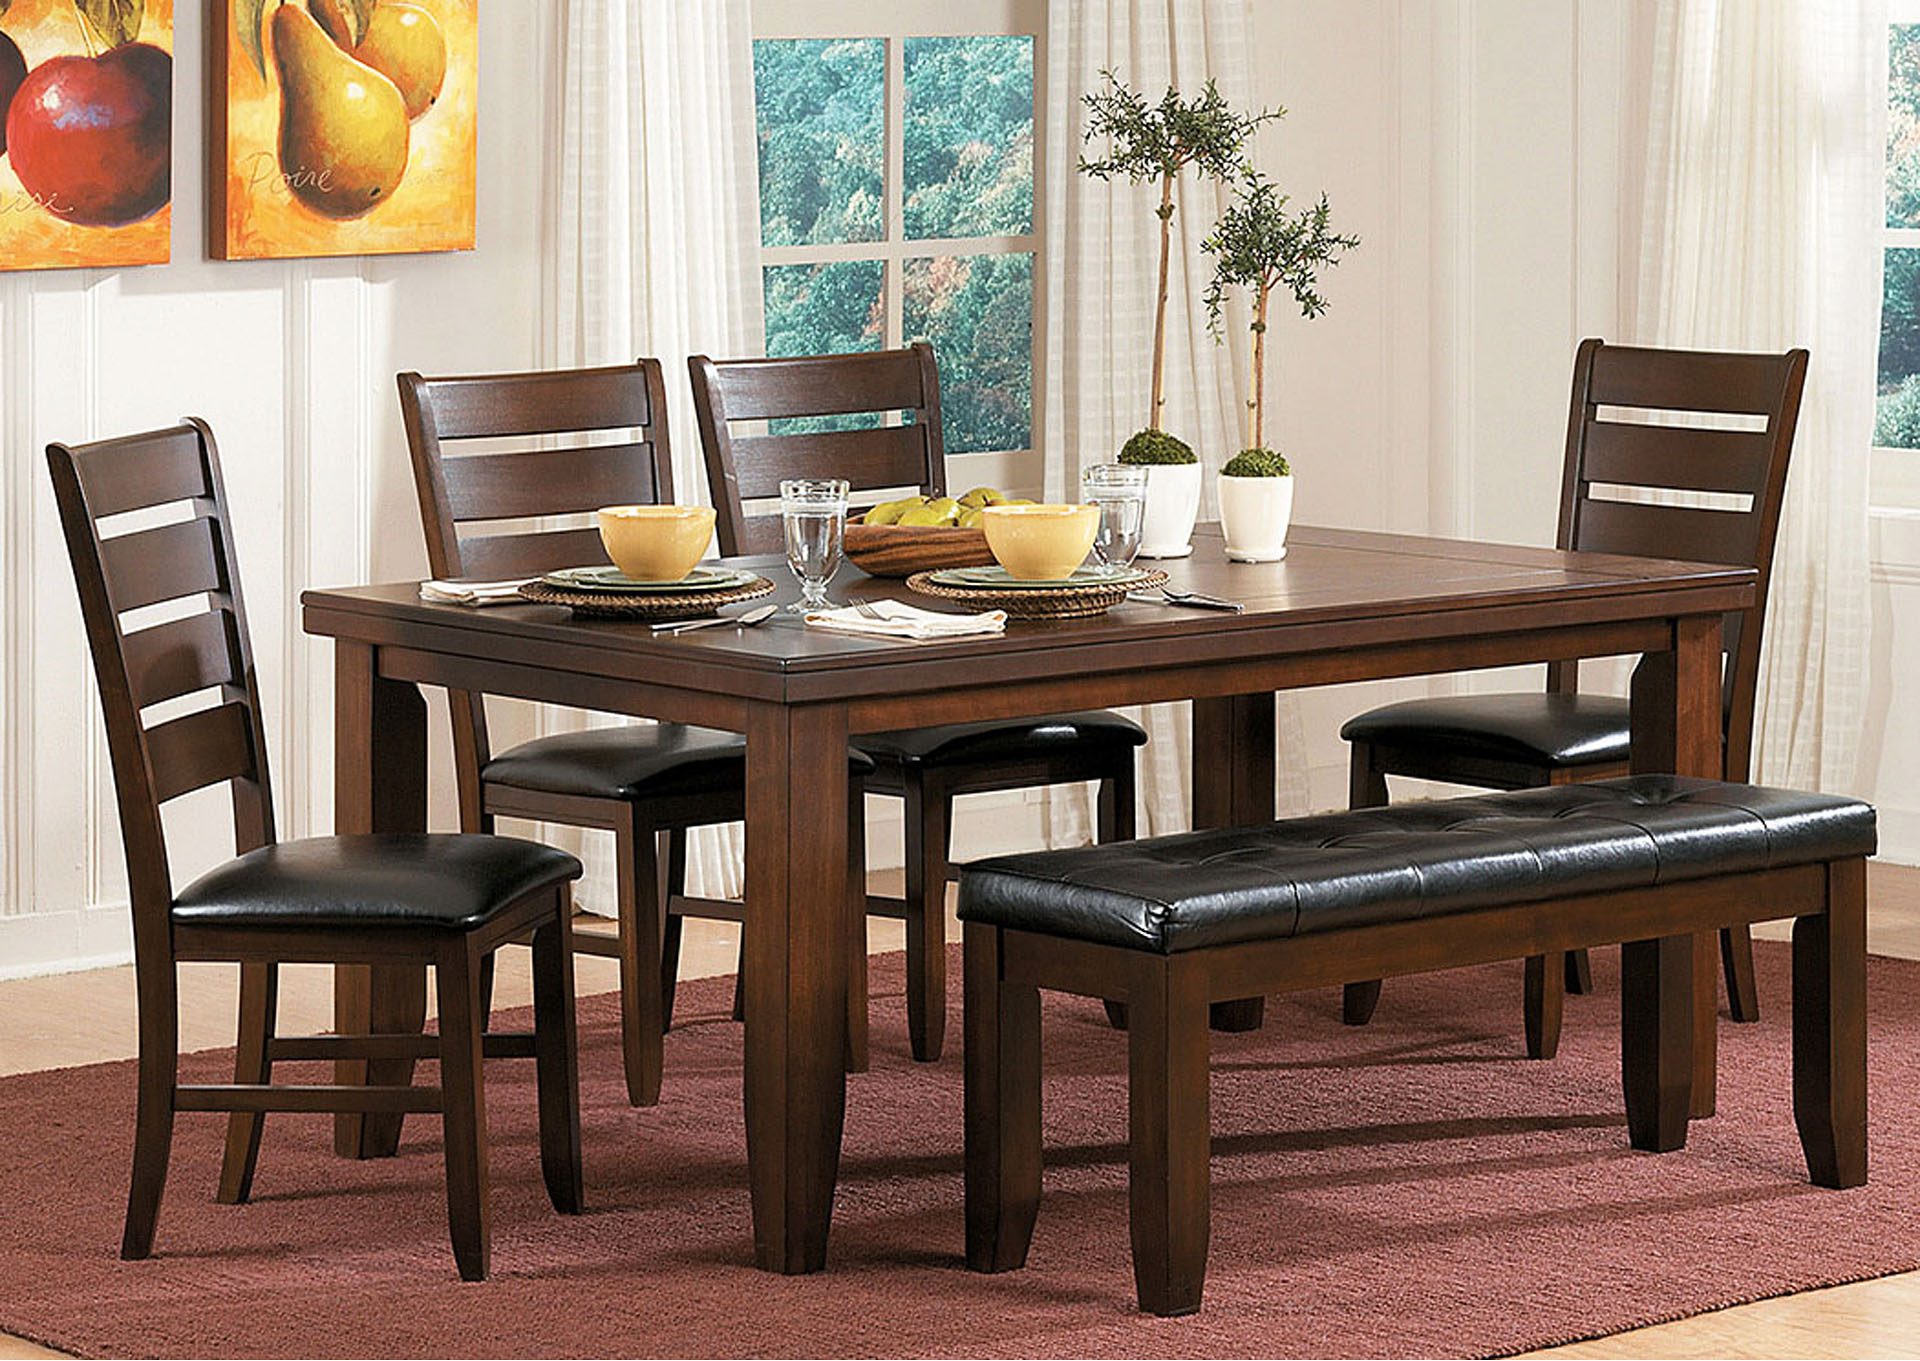 Ameillia Rectangular Dining Table,Homelegance